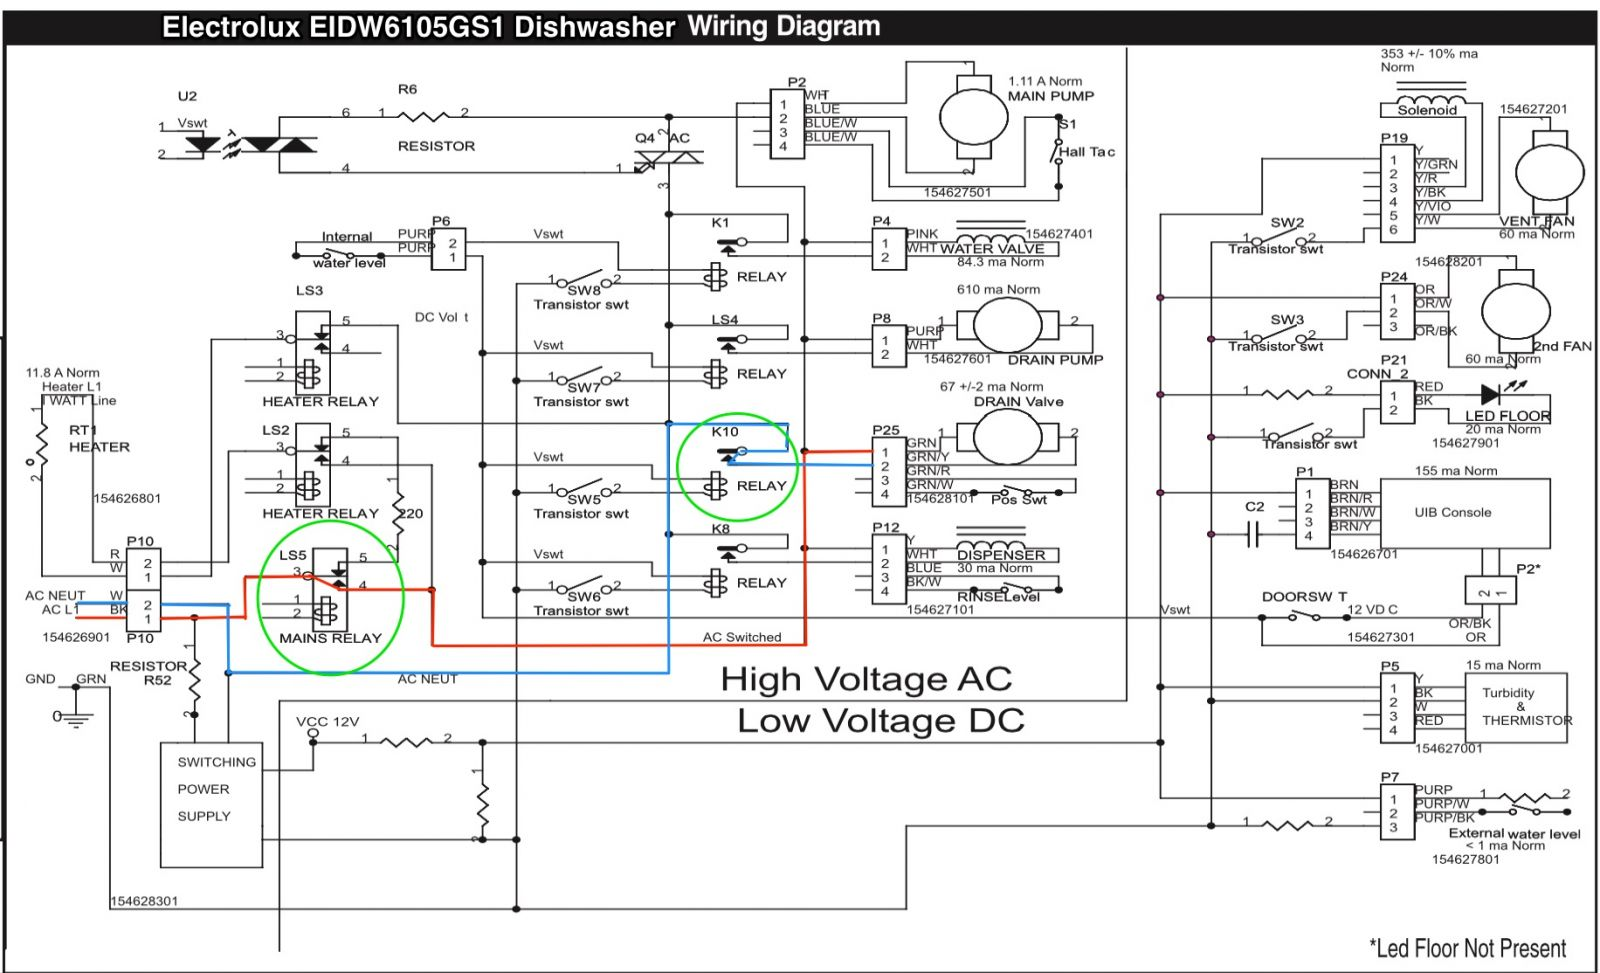 electrolux eidw6105gs1 dishwasher wiring diagram the appliantology rh appliantology org wiring diagram for dishwasher wiring diagram for kenmore dishwasher